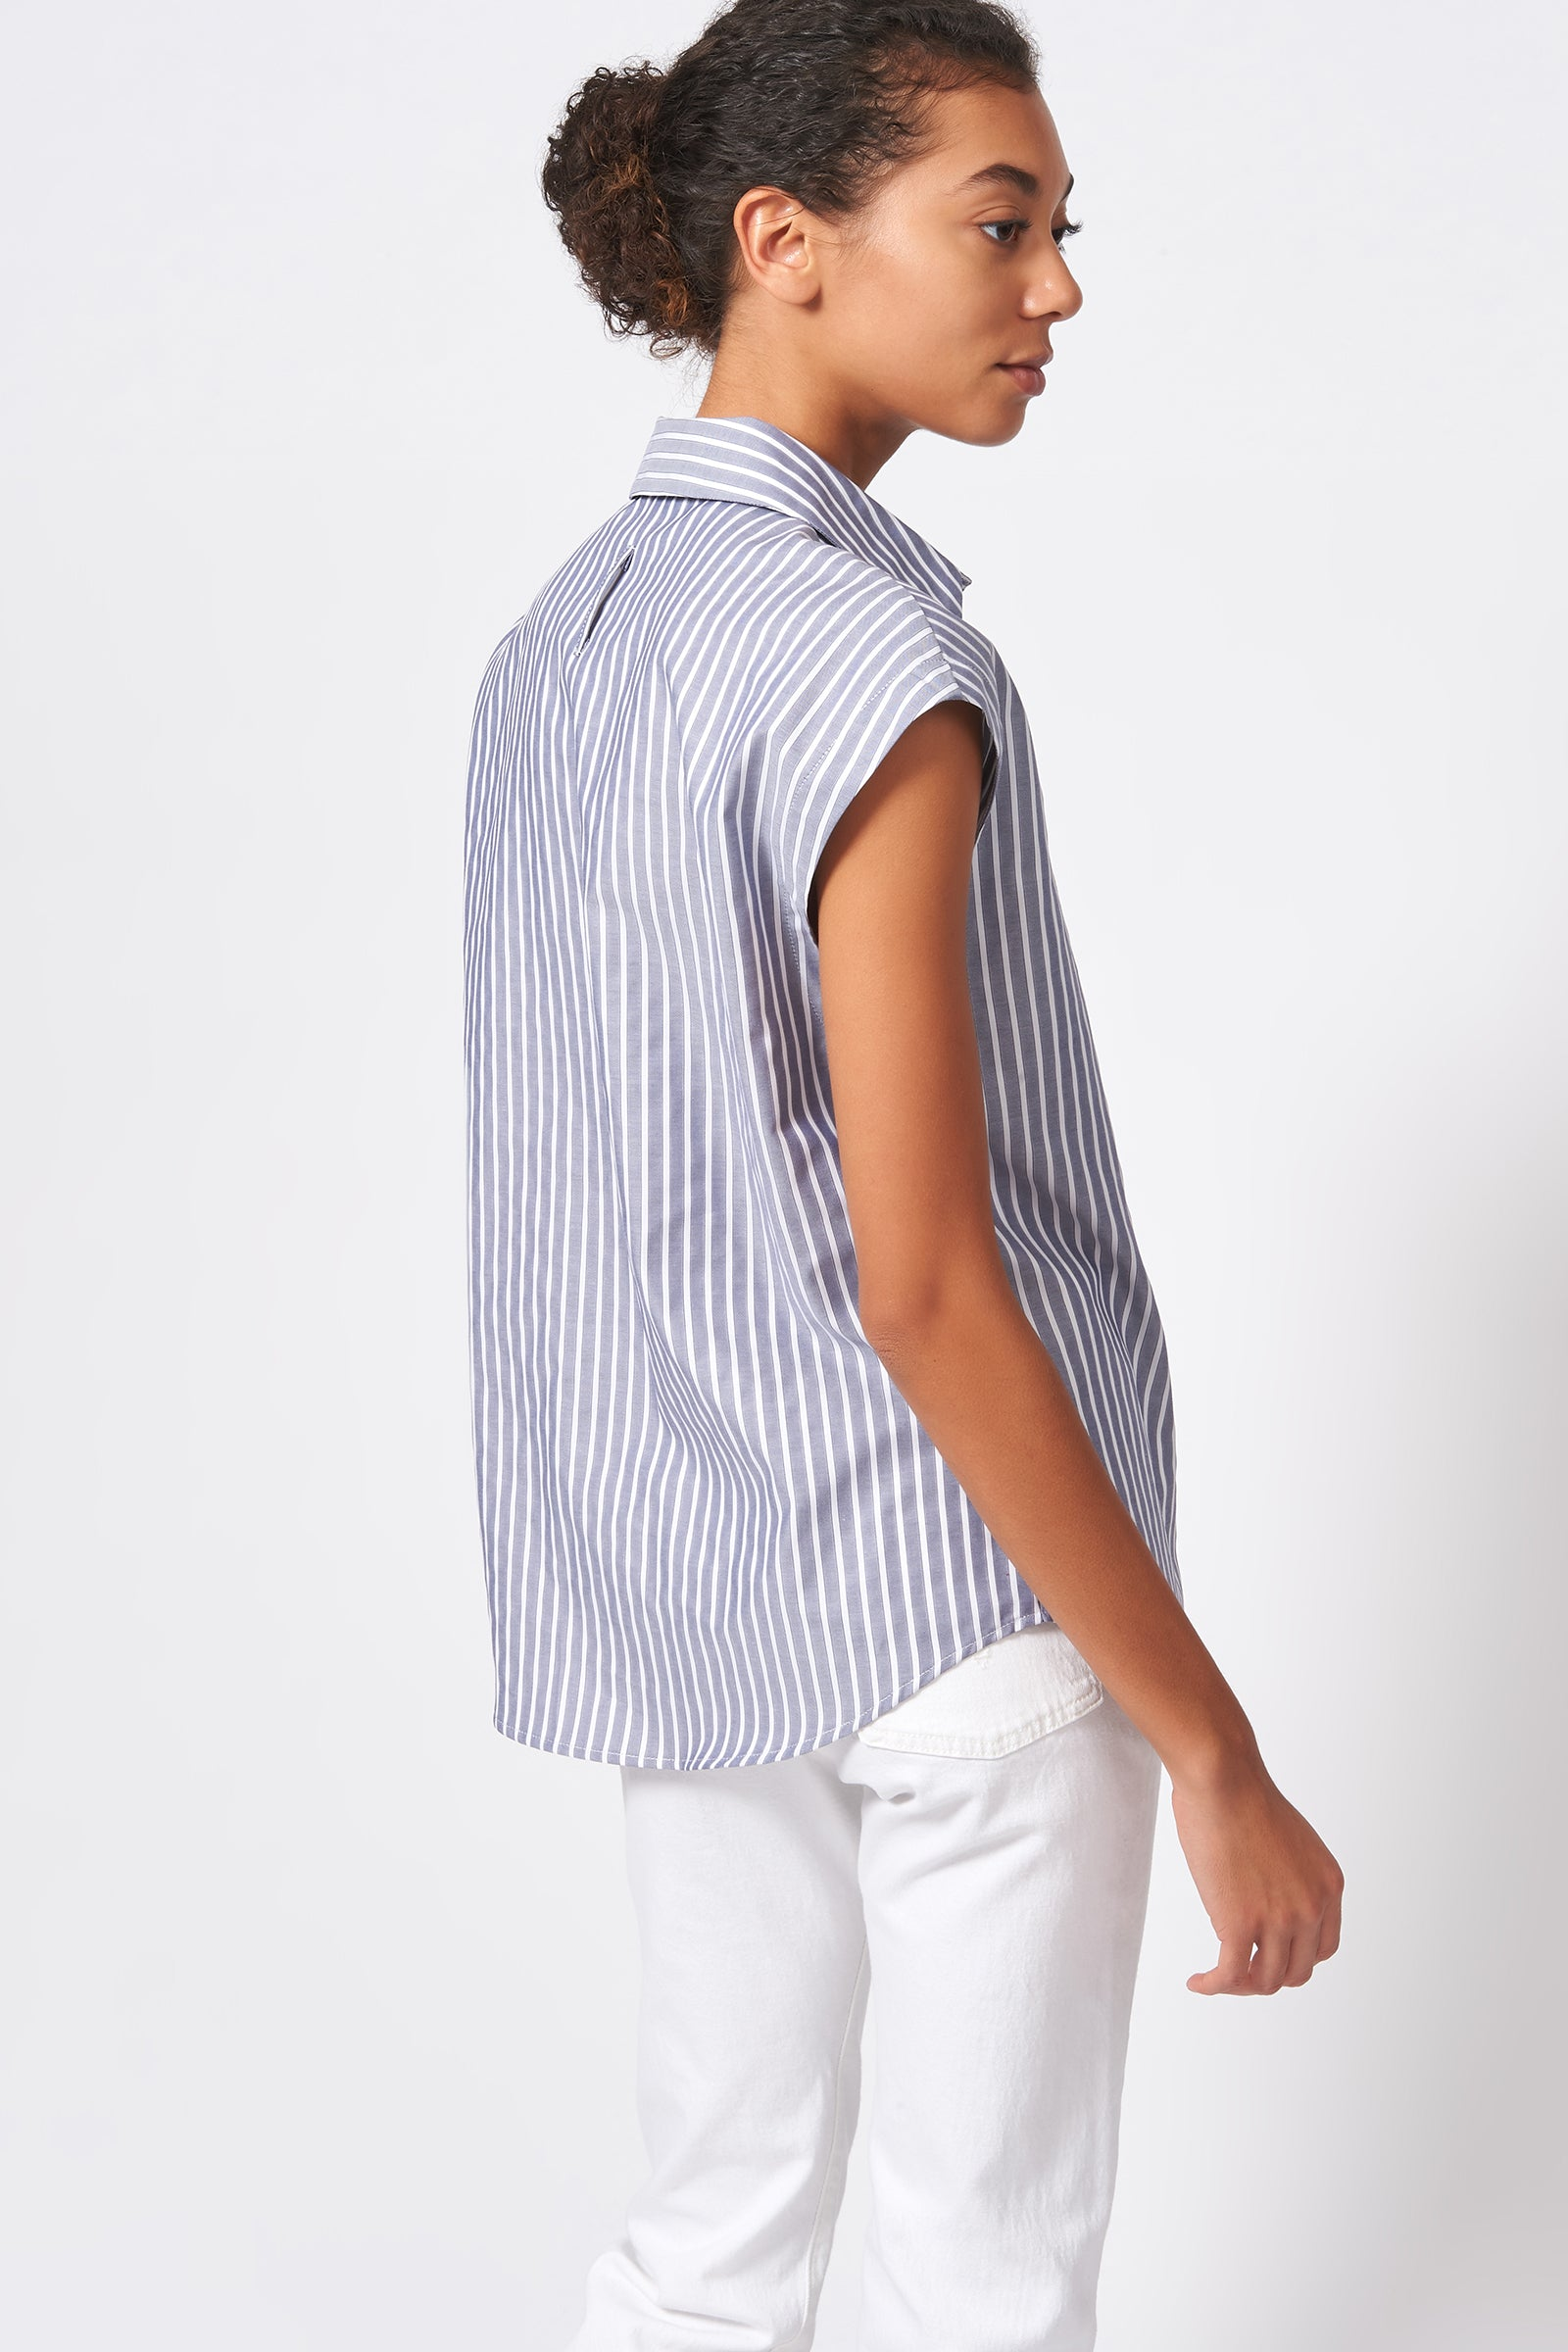 Kal Rieman Collared Cap Sleeve Shirt in Oxford Stripe on Model Back View